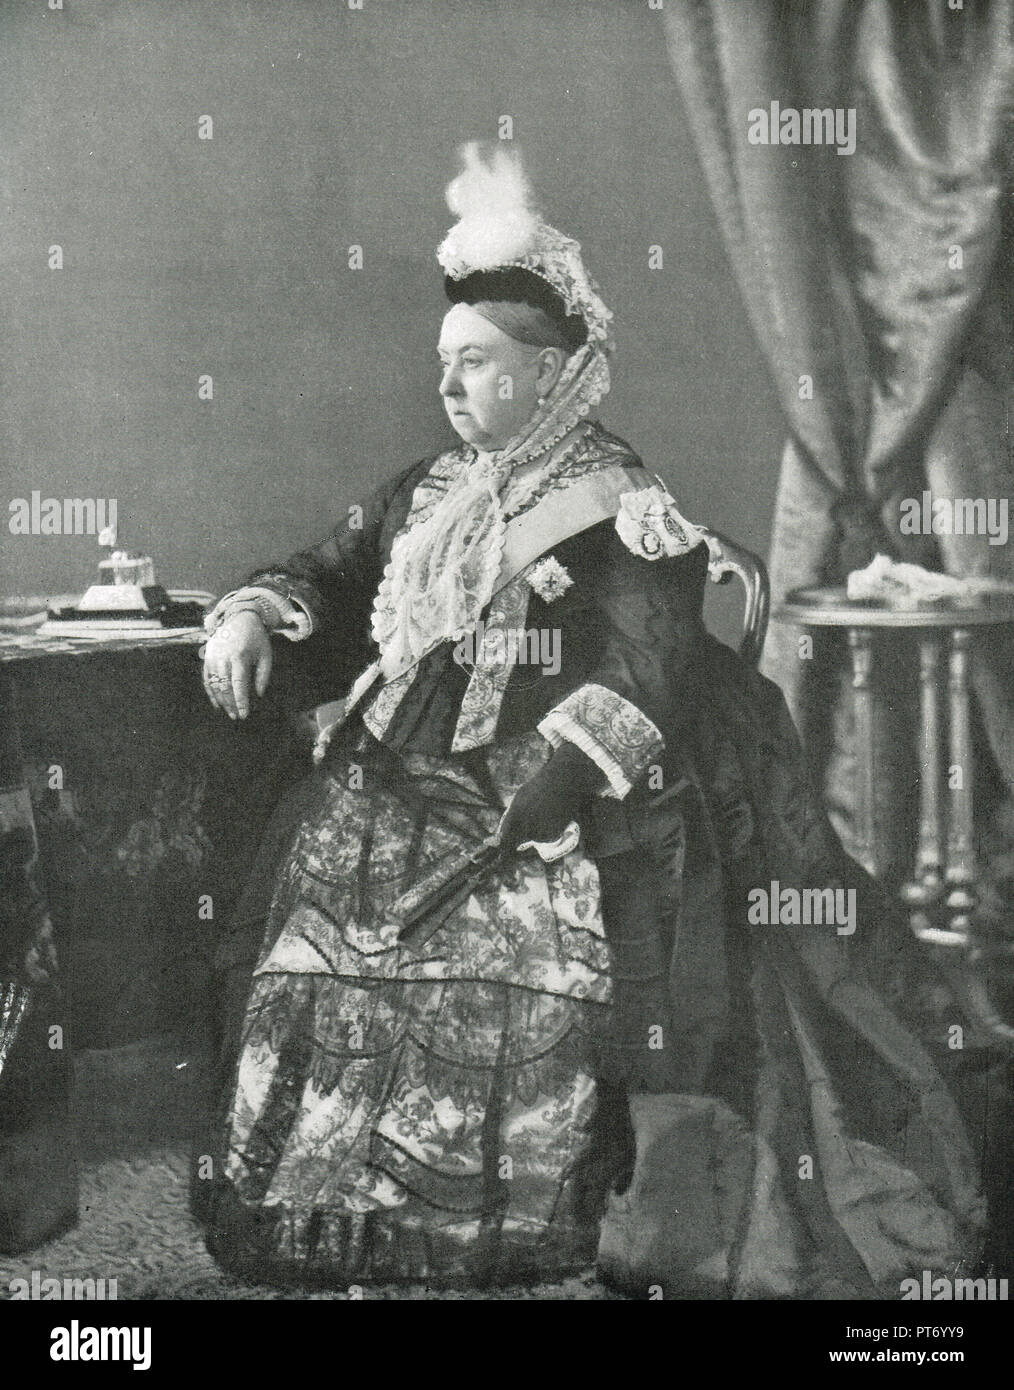 Queen Victoria, 1887, wearing the dress she wore at the service on her Golden Jubilee - Stock Image